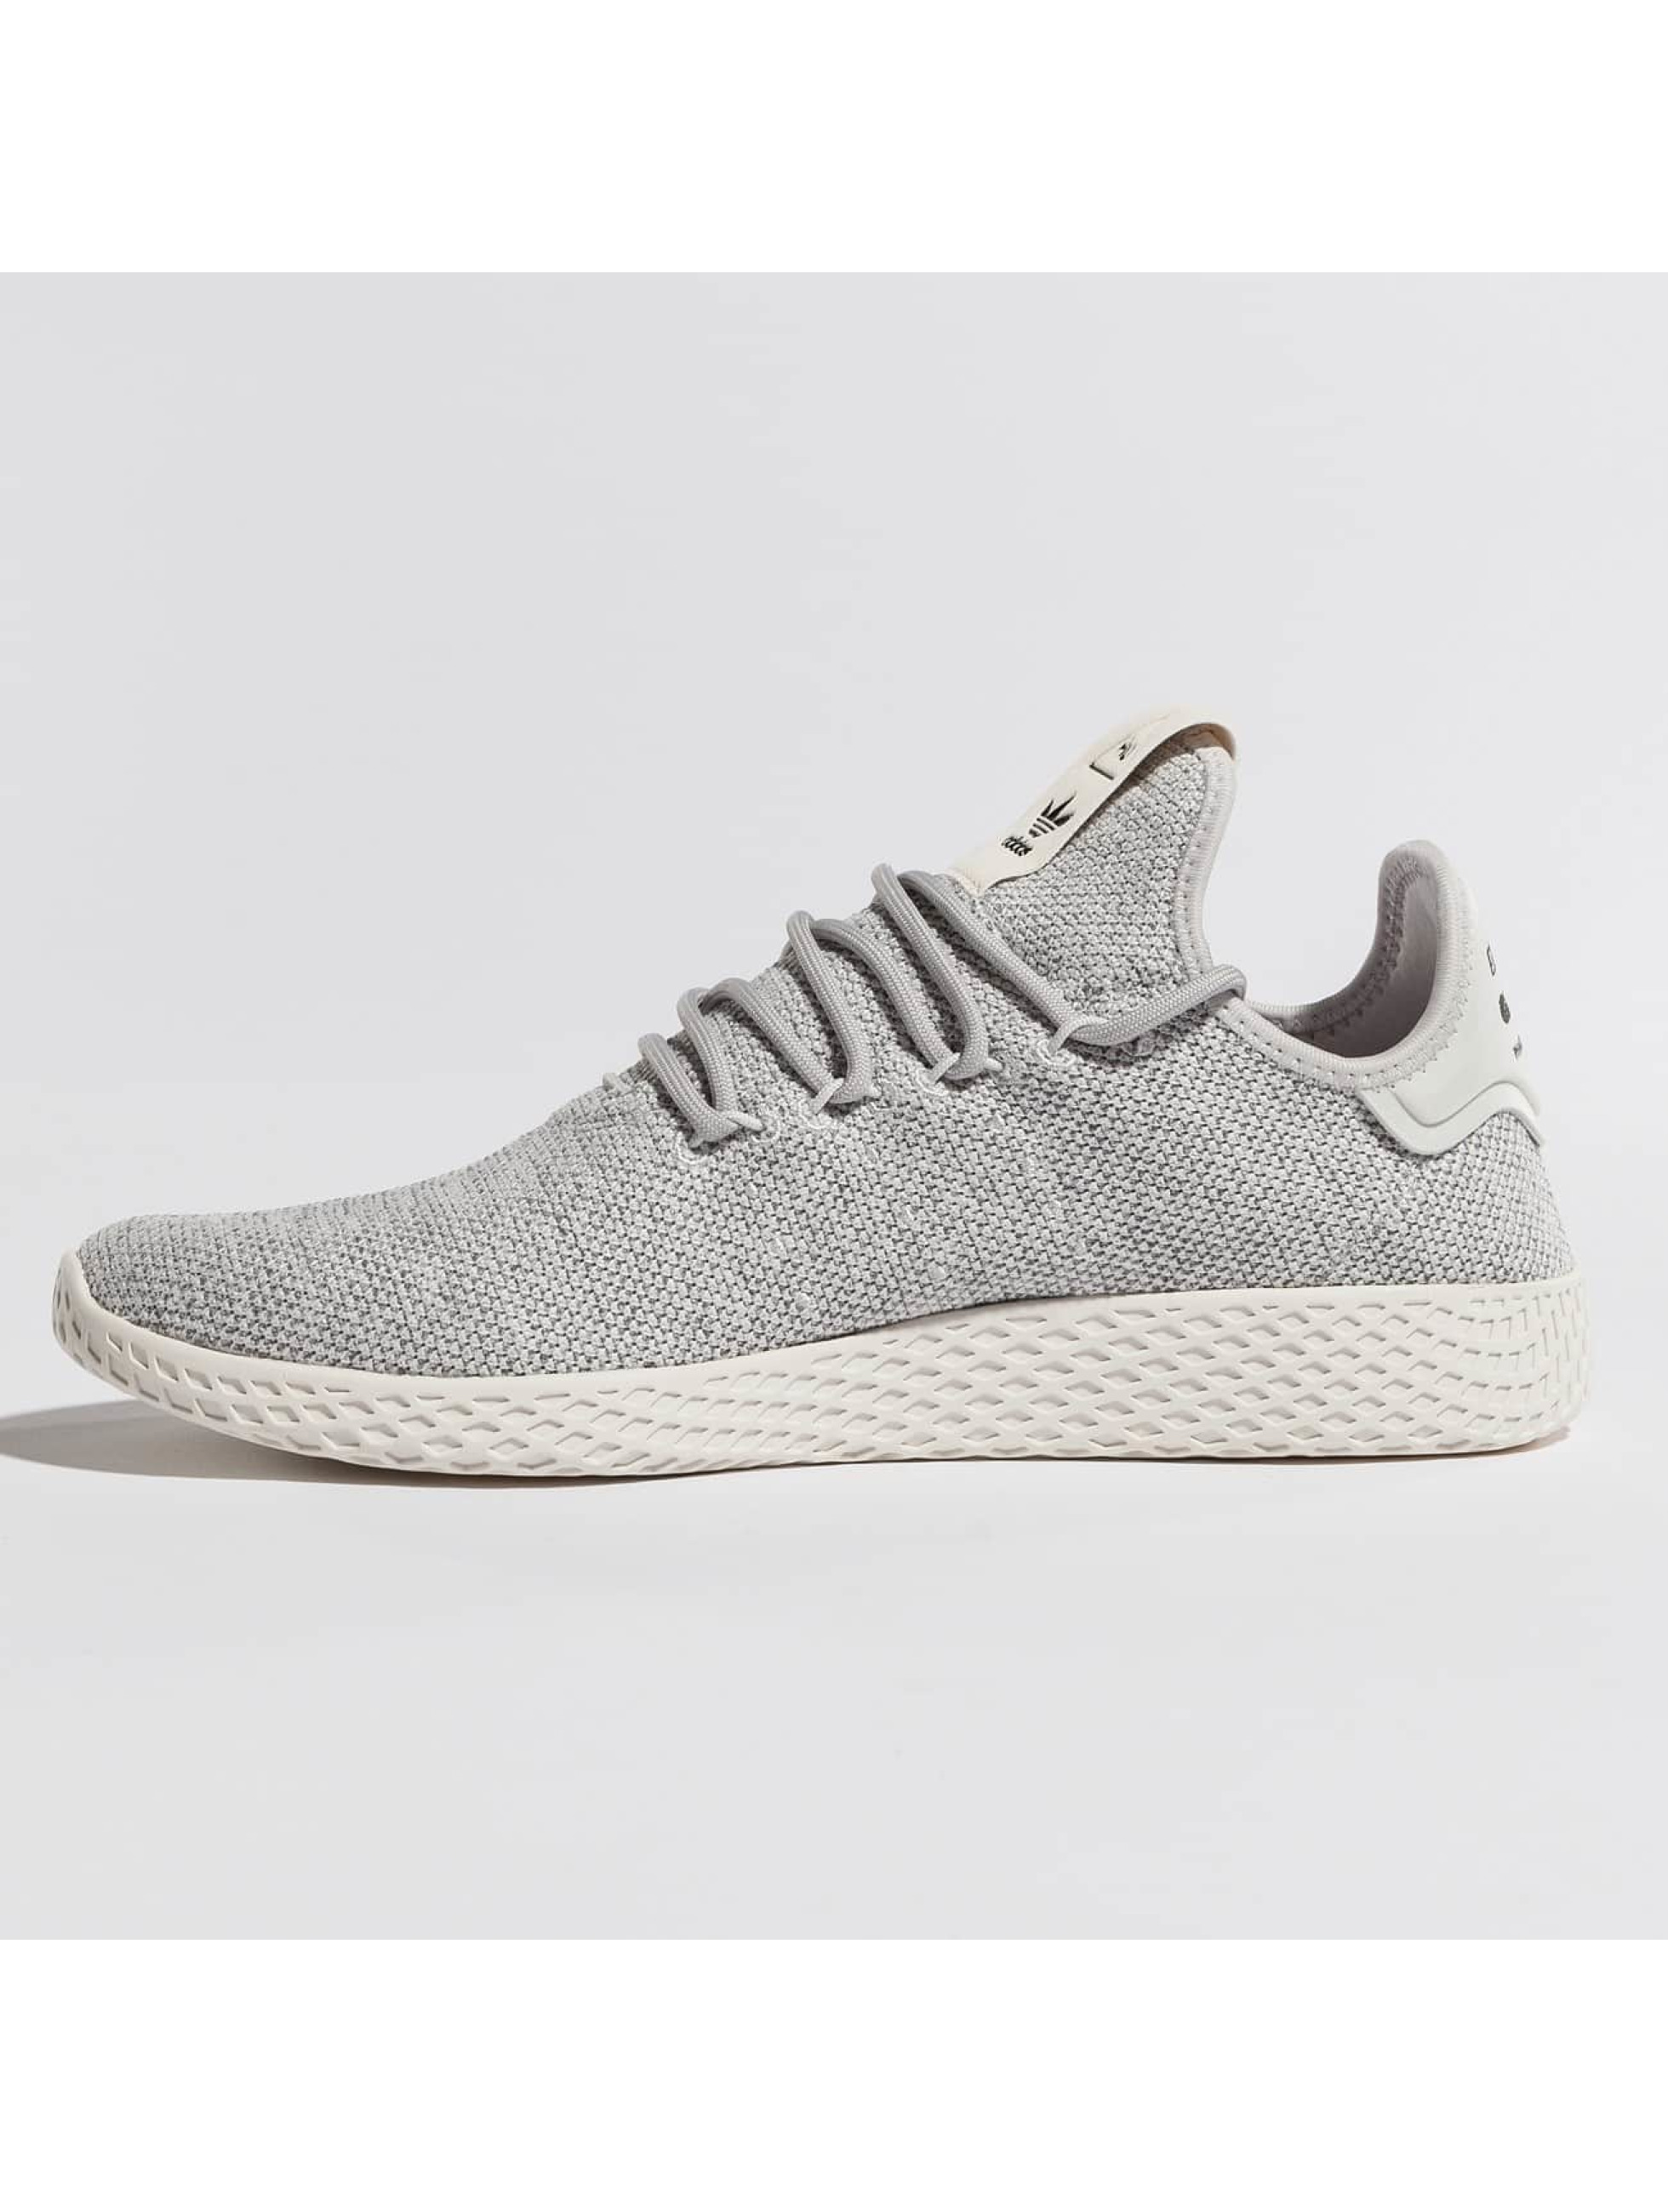 adidas Sneakers Pharrell Williams Tennis HU gray